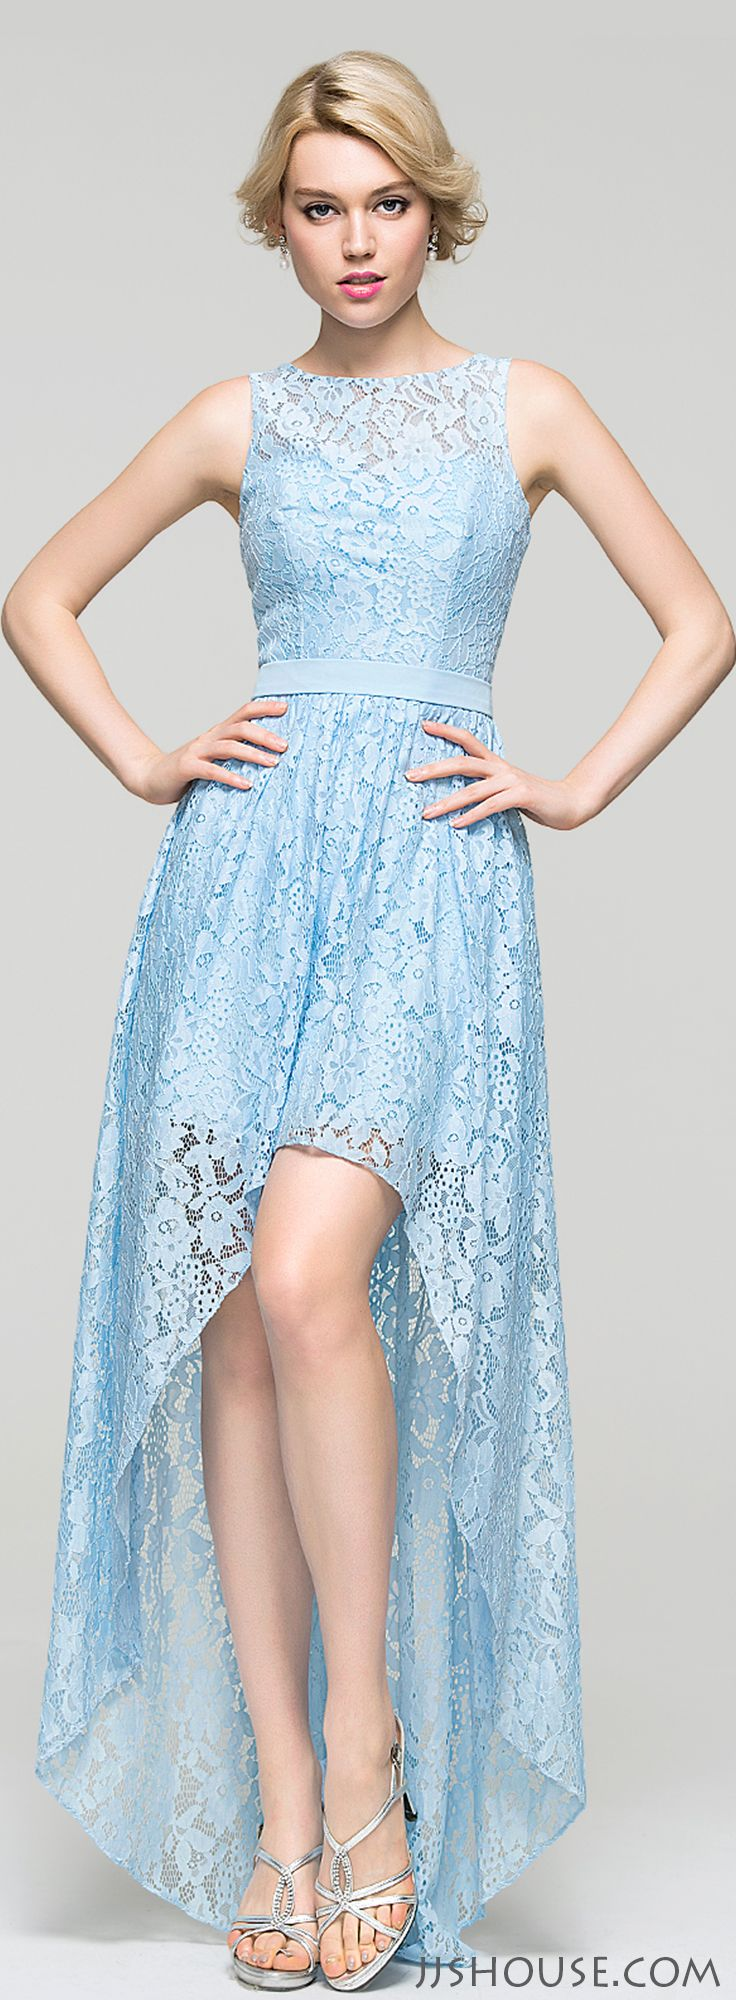 Perfect Prom Dress Jjshouse Ensign - All Wedding Dresses ...